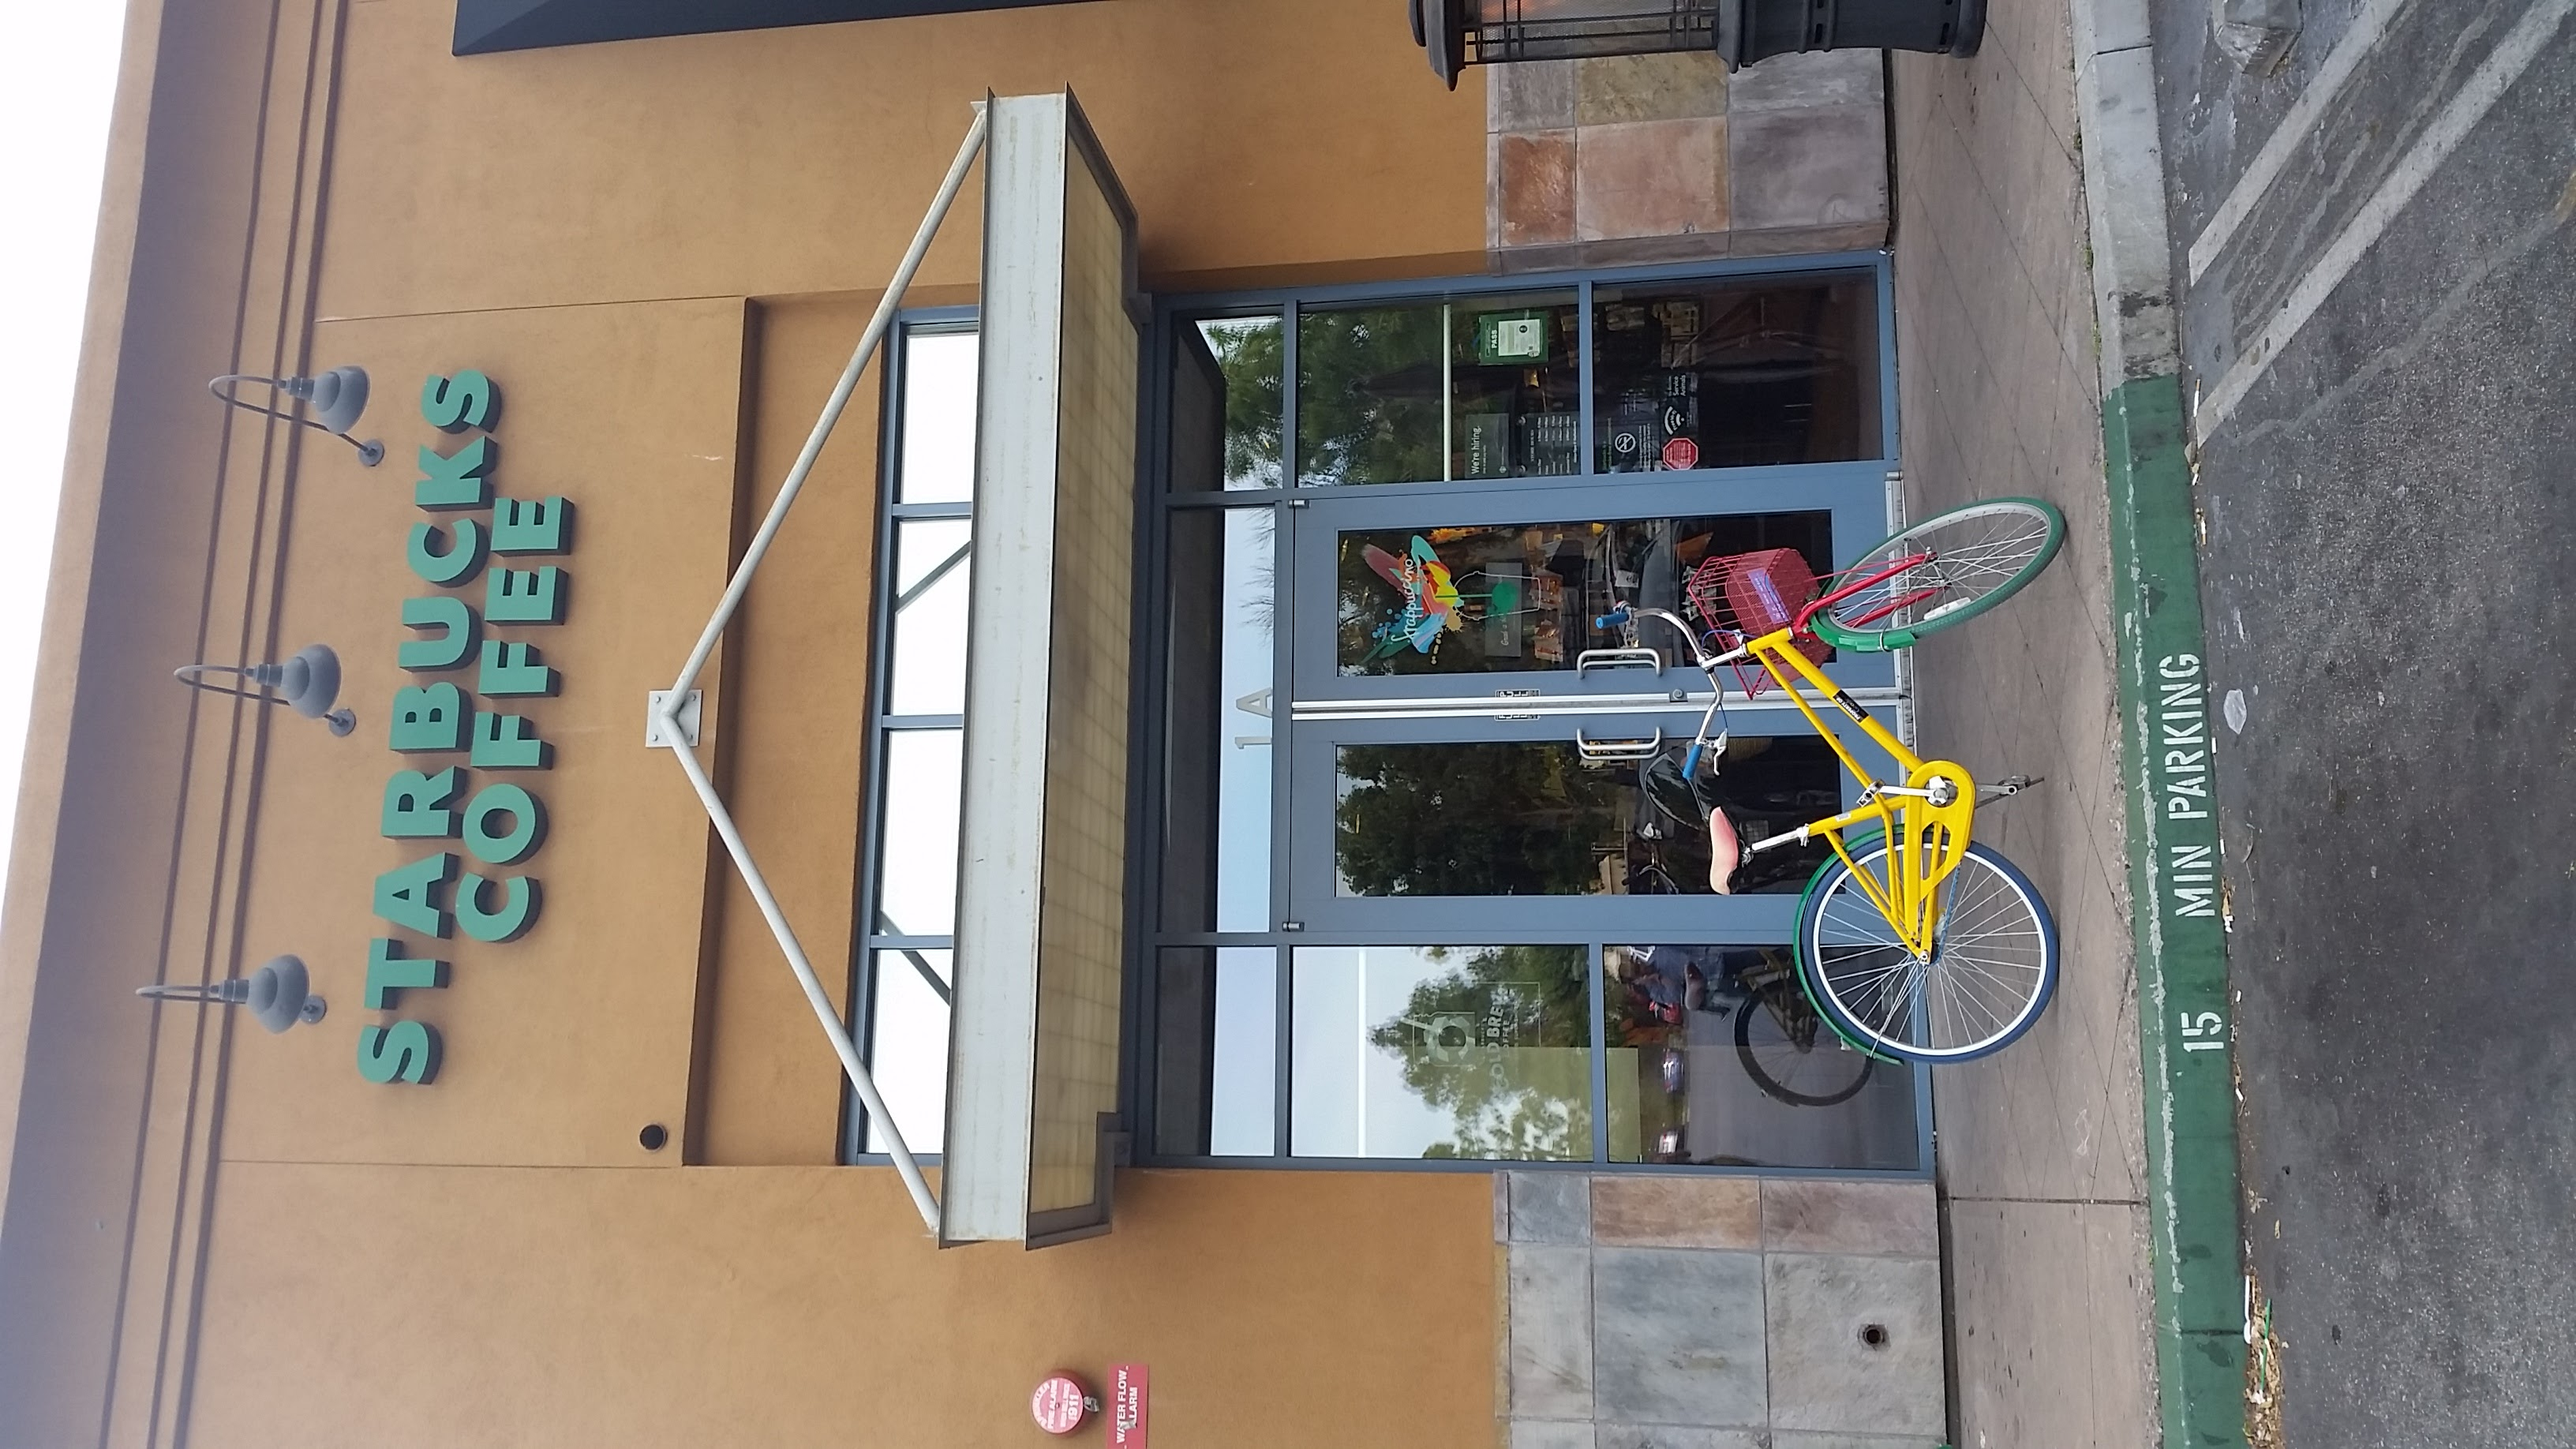 Starbucks & Bicycle Google